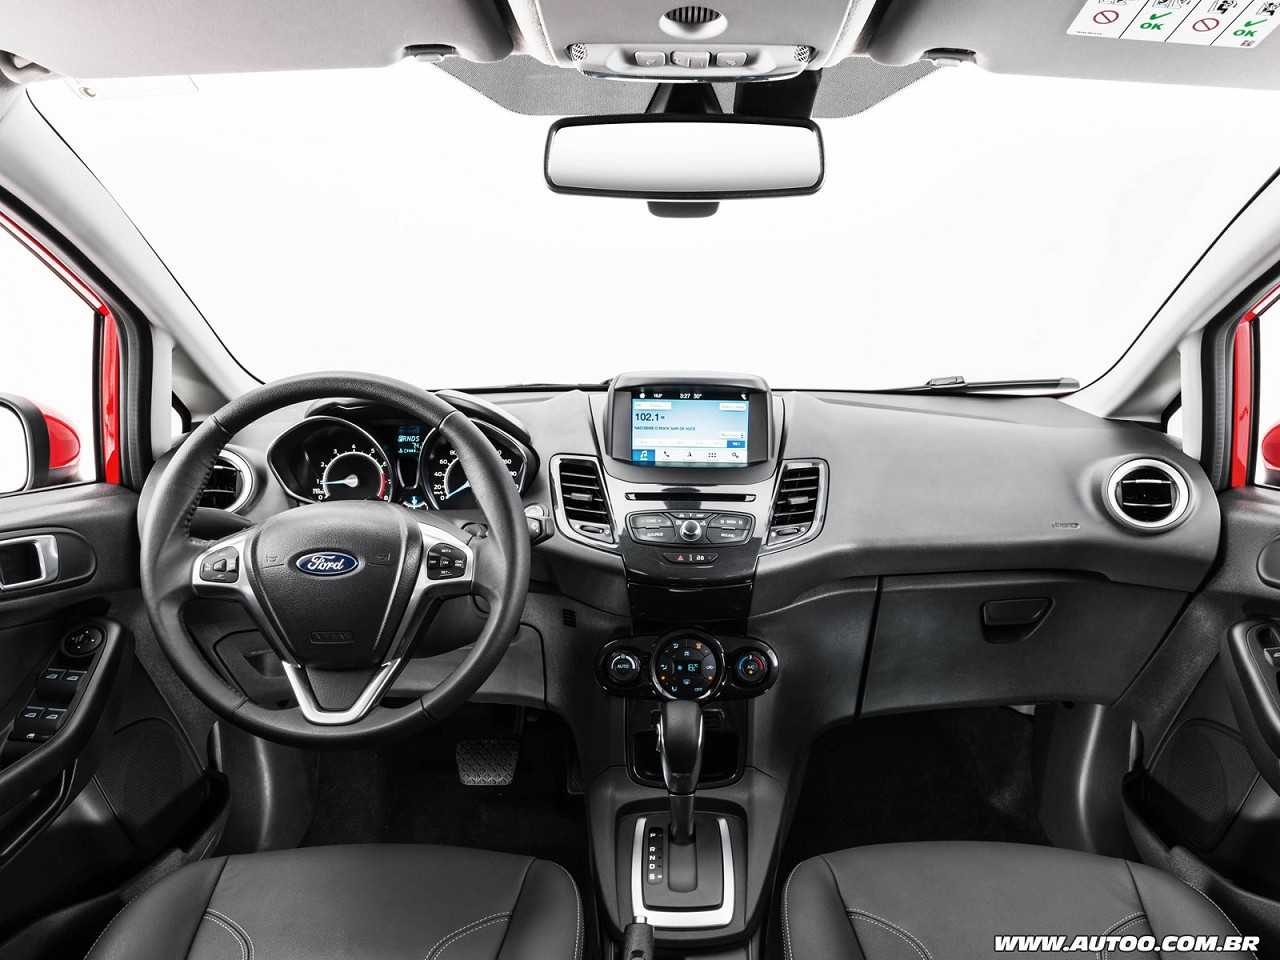 Ford Fiesta 2018 - painel